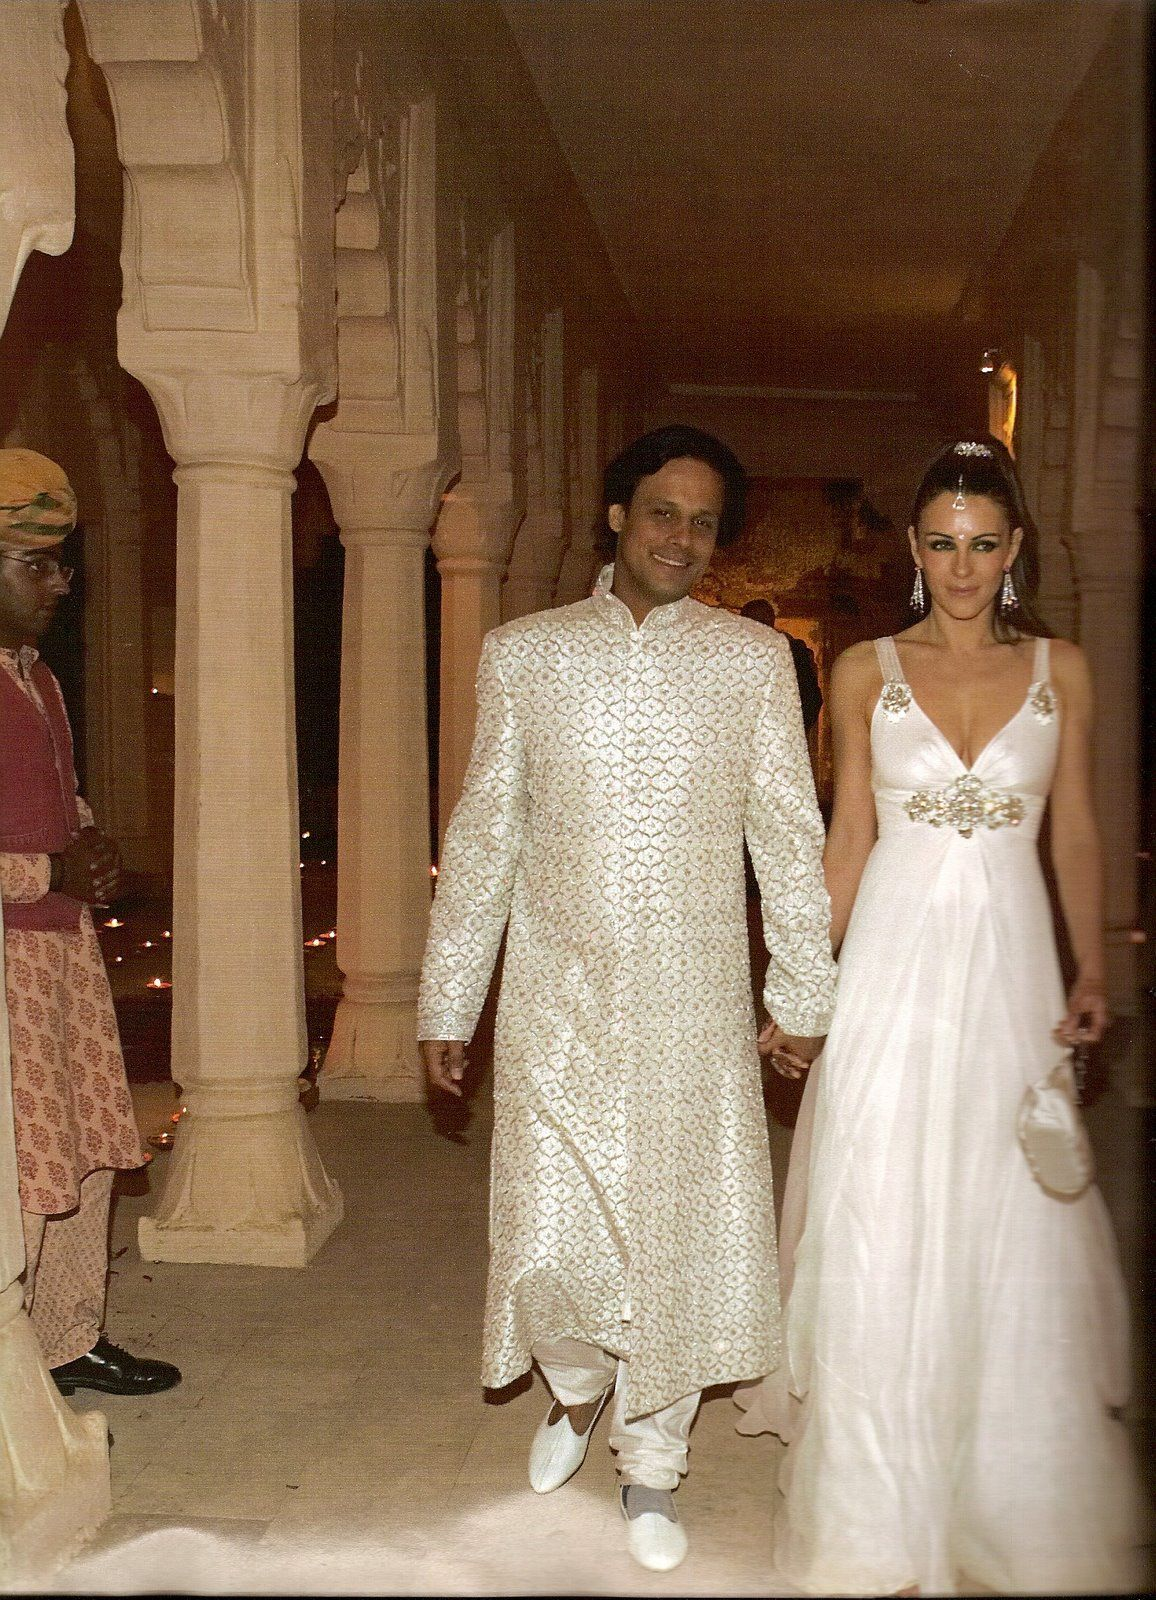 English Actress Elizabeth Hurley Wore A Jenny Packham Bridal Gown One Of 3 Gowns She For Her March 2007 Wedding To Indian Textile Heir Arun Nayar